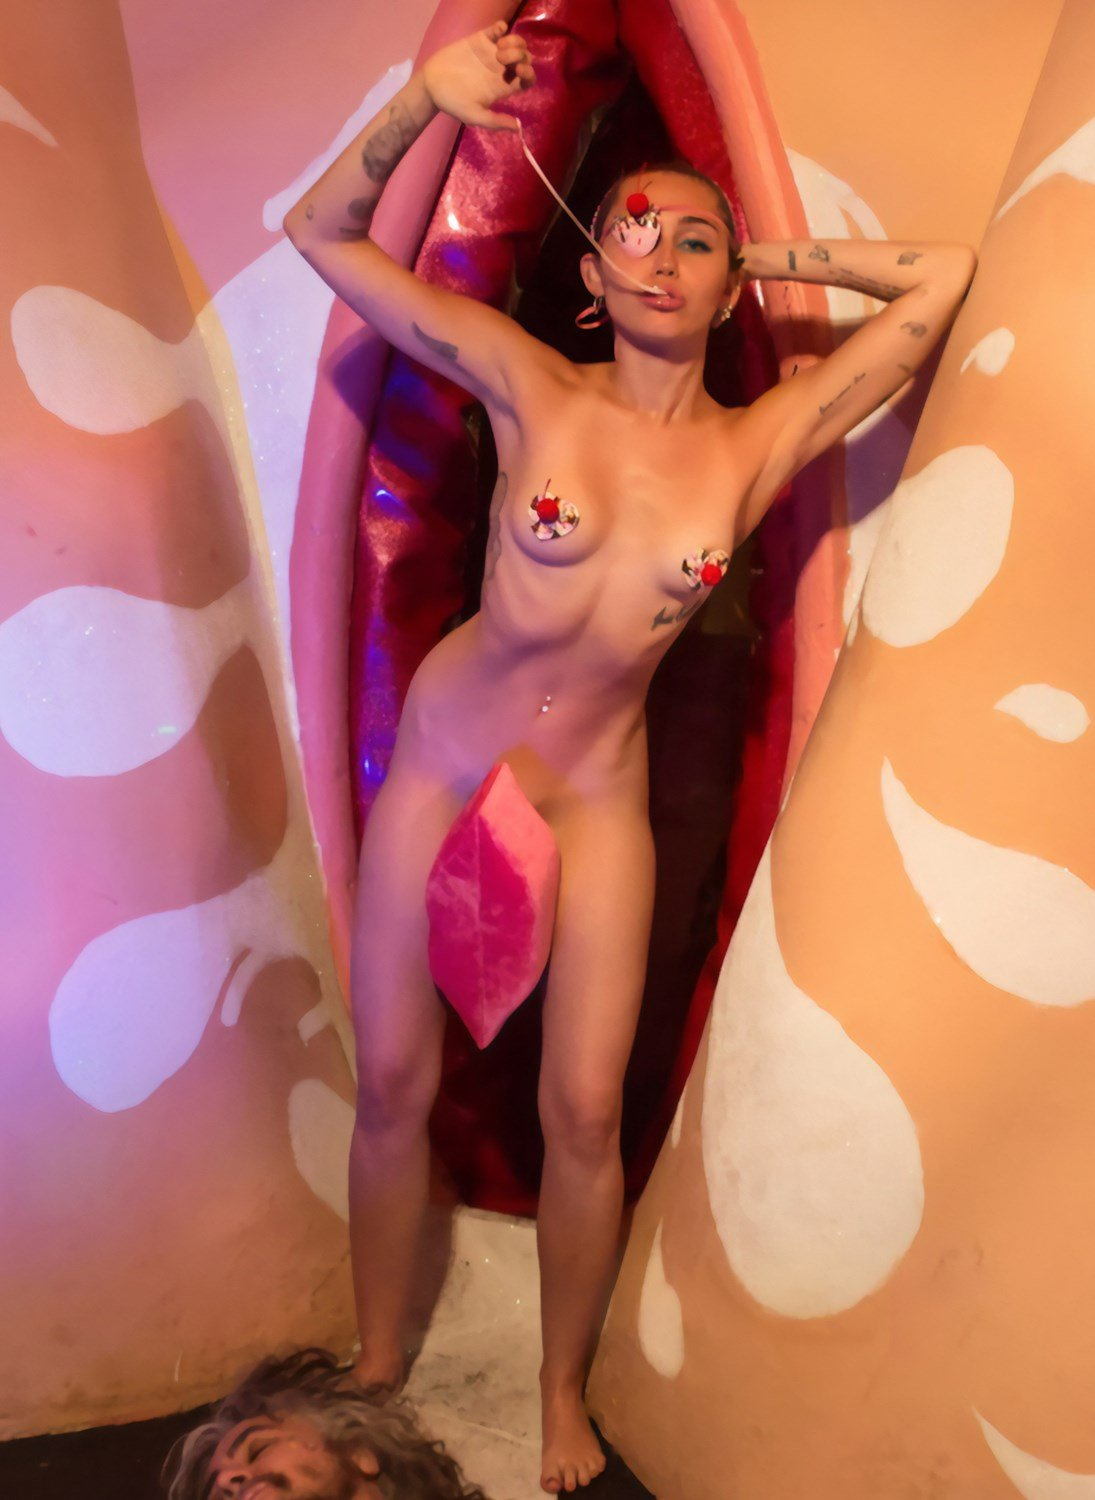 Miley Cyrus Nude Outtakes From Plastik Magazine Leaked